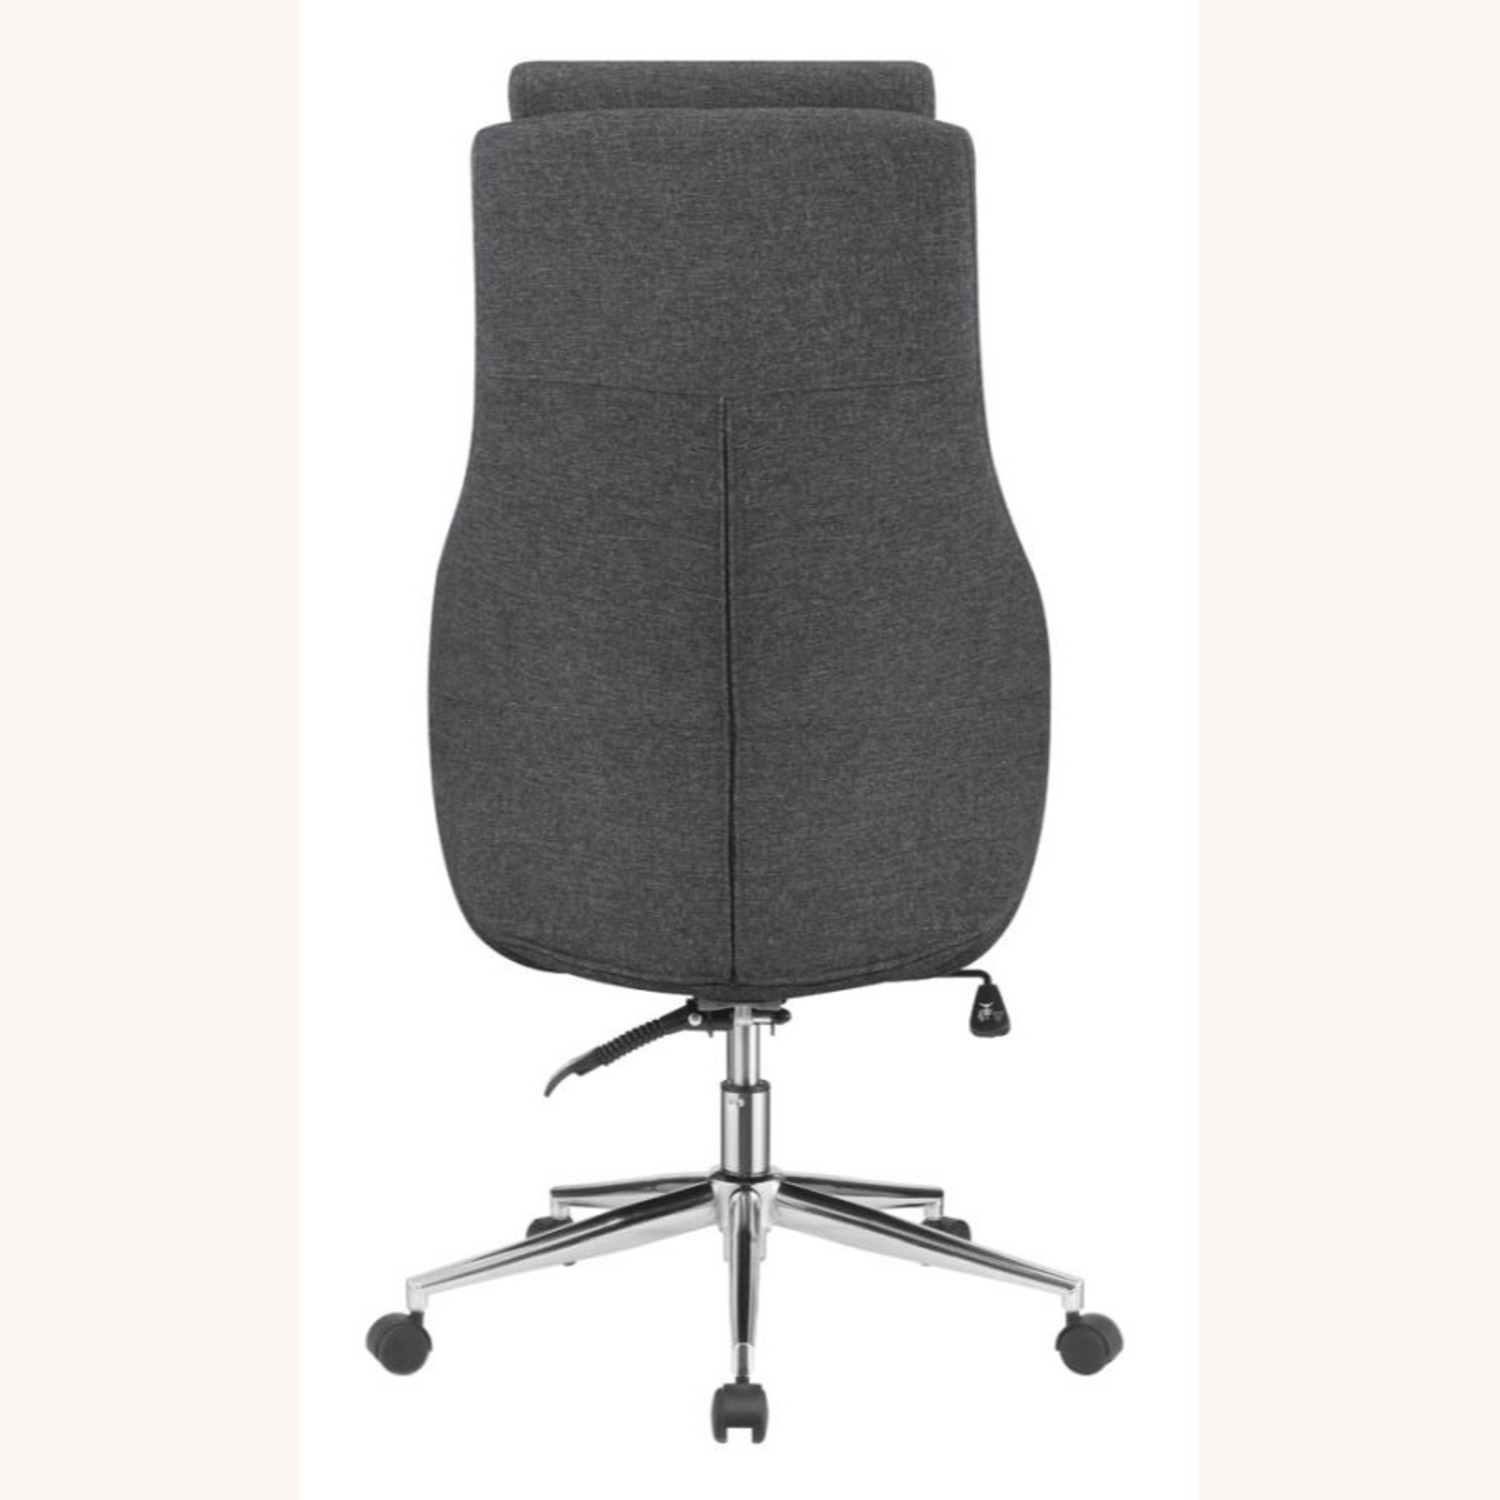 Office Chair In Grey Finish W/ Chrome Metal Base - image-2